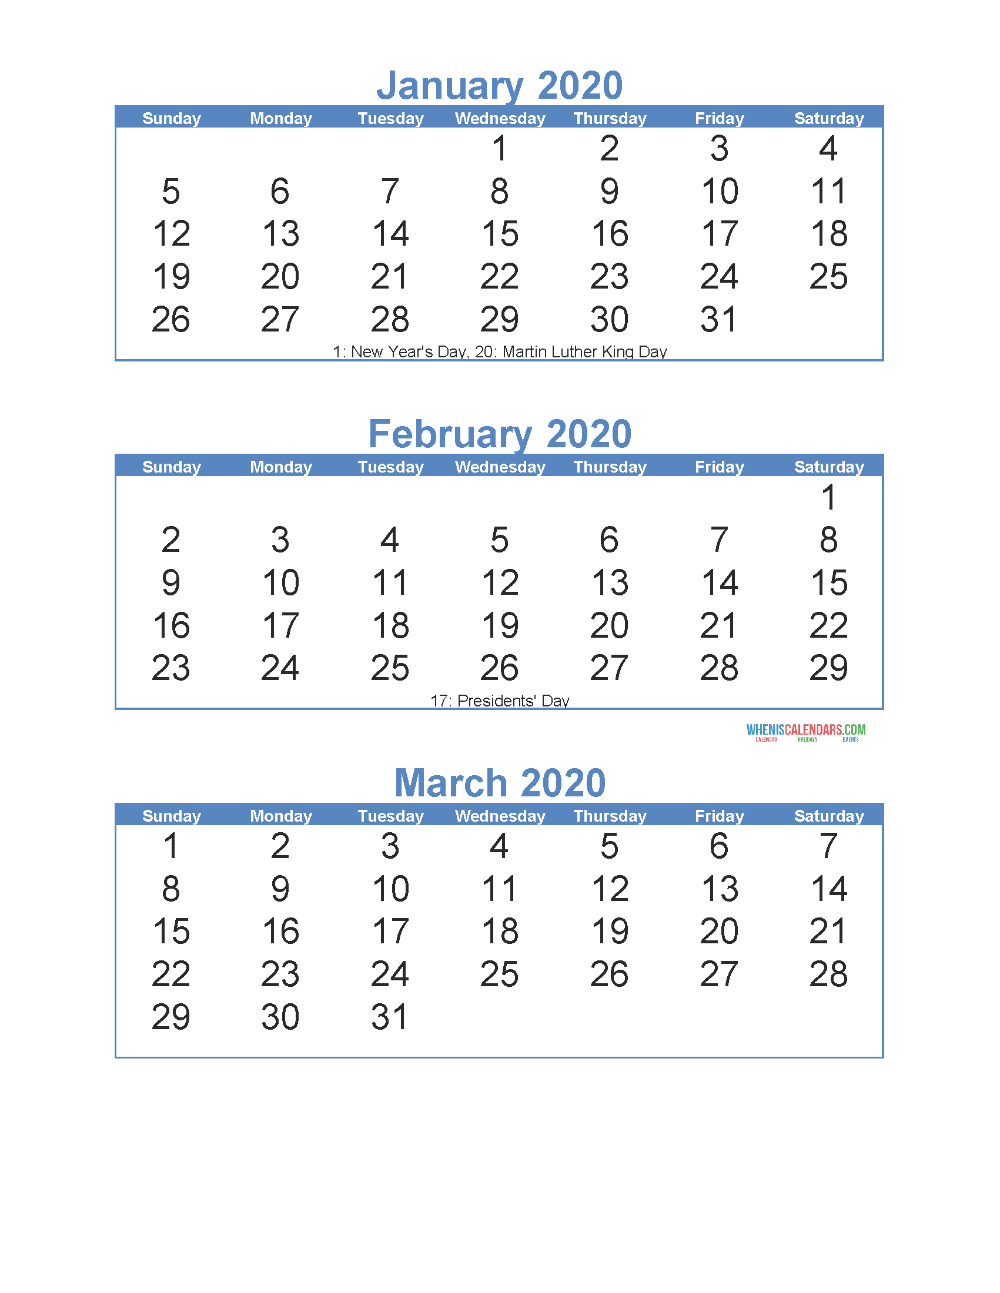 Free Printable 3 Month Calendar 2020 January February March Free Printable 2020 Calendar Templates 3 Month Calendar Calendar Printables Calendar Template